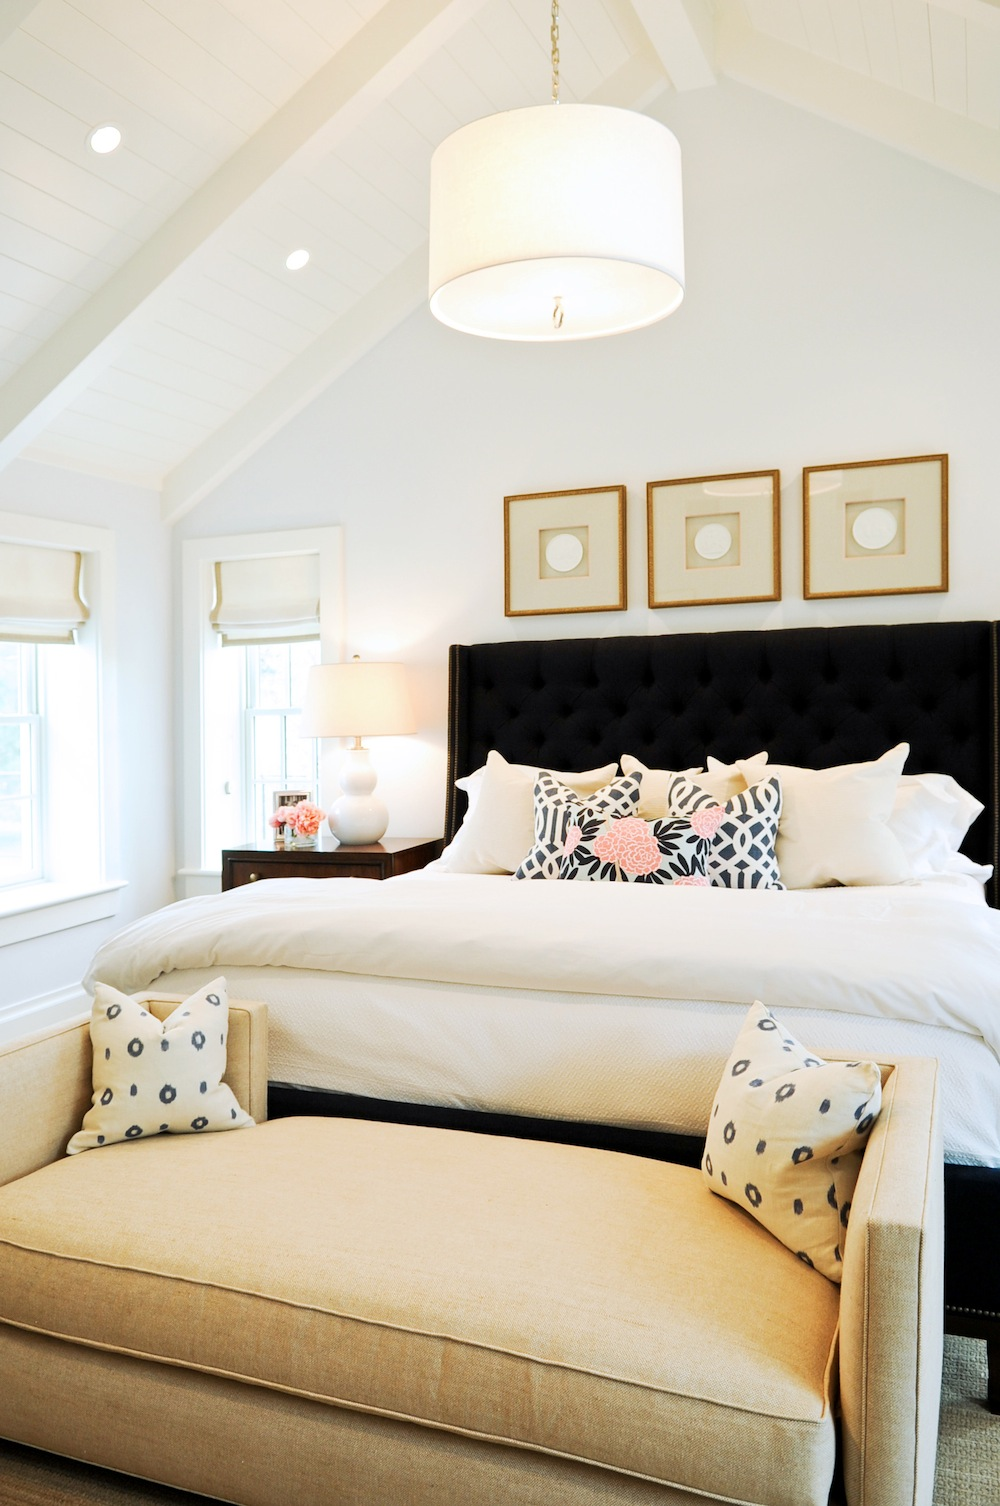 with full bed beds daybed pictures enchanting white fabulous inspirations for size headboards headboard ideas fabric